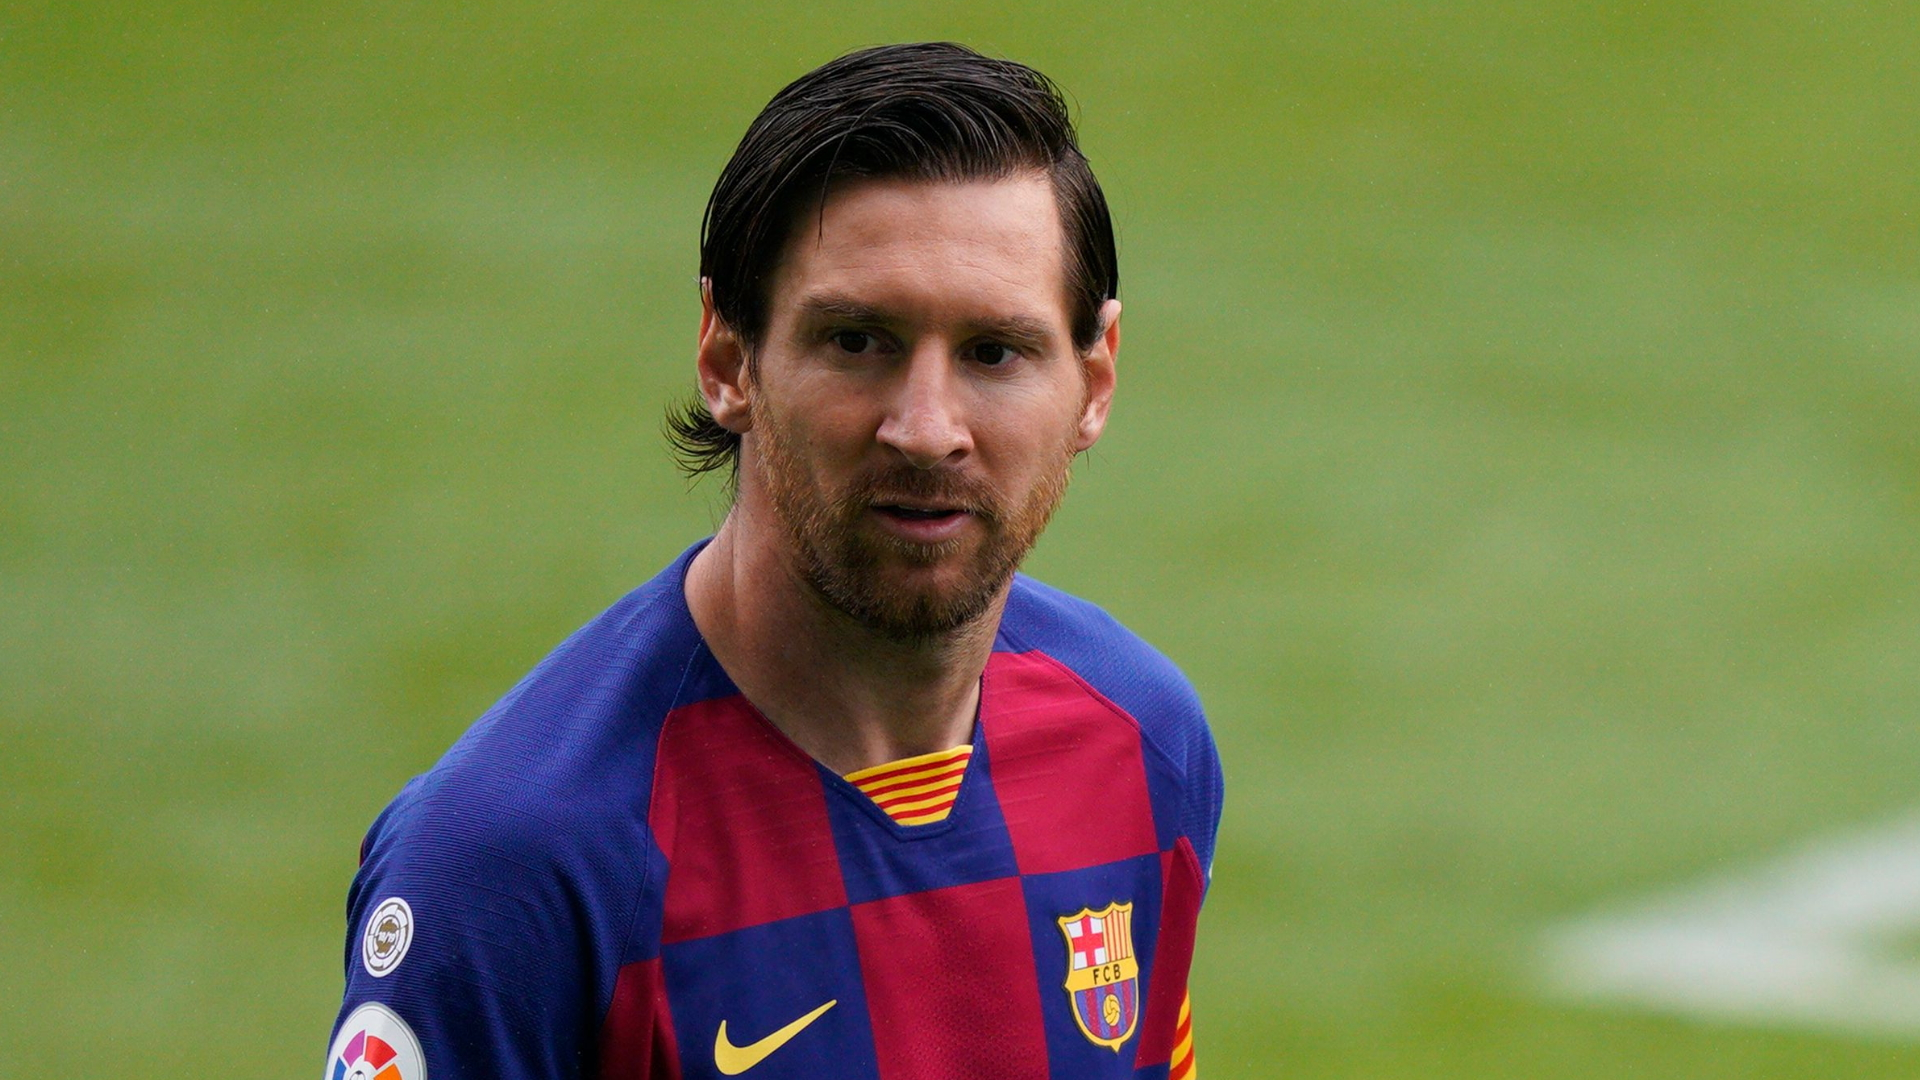 Inter sponsor Pirelli can help the club sign Messi, claims chief executive Tronchetti